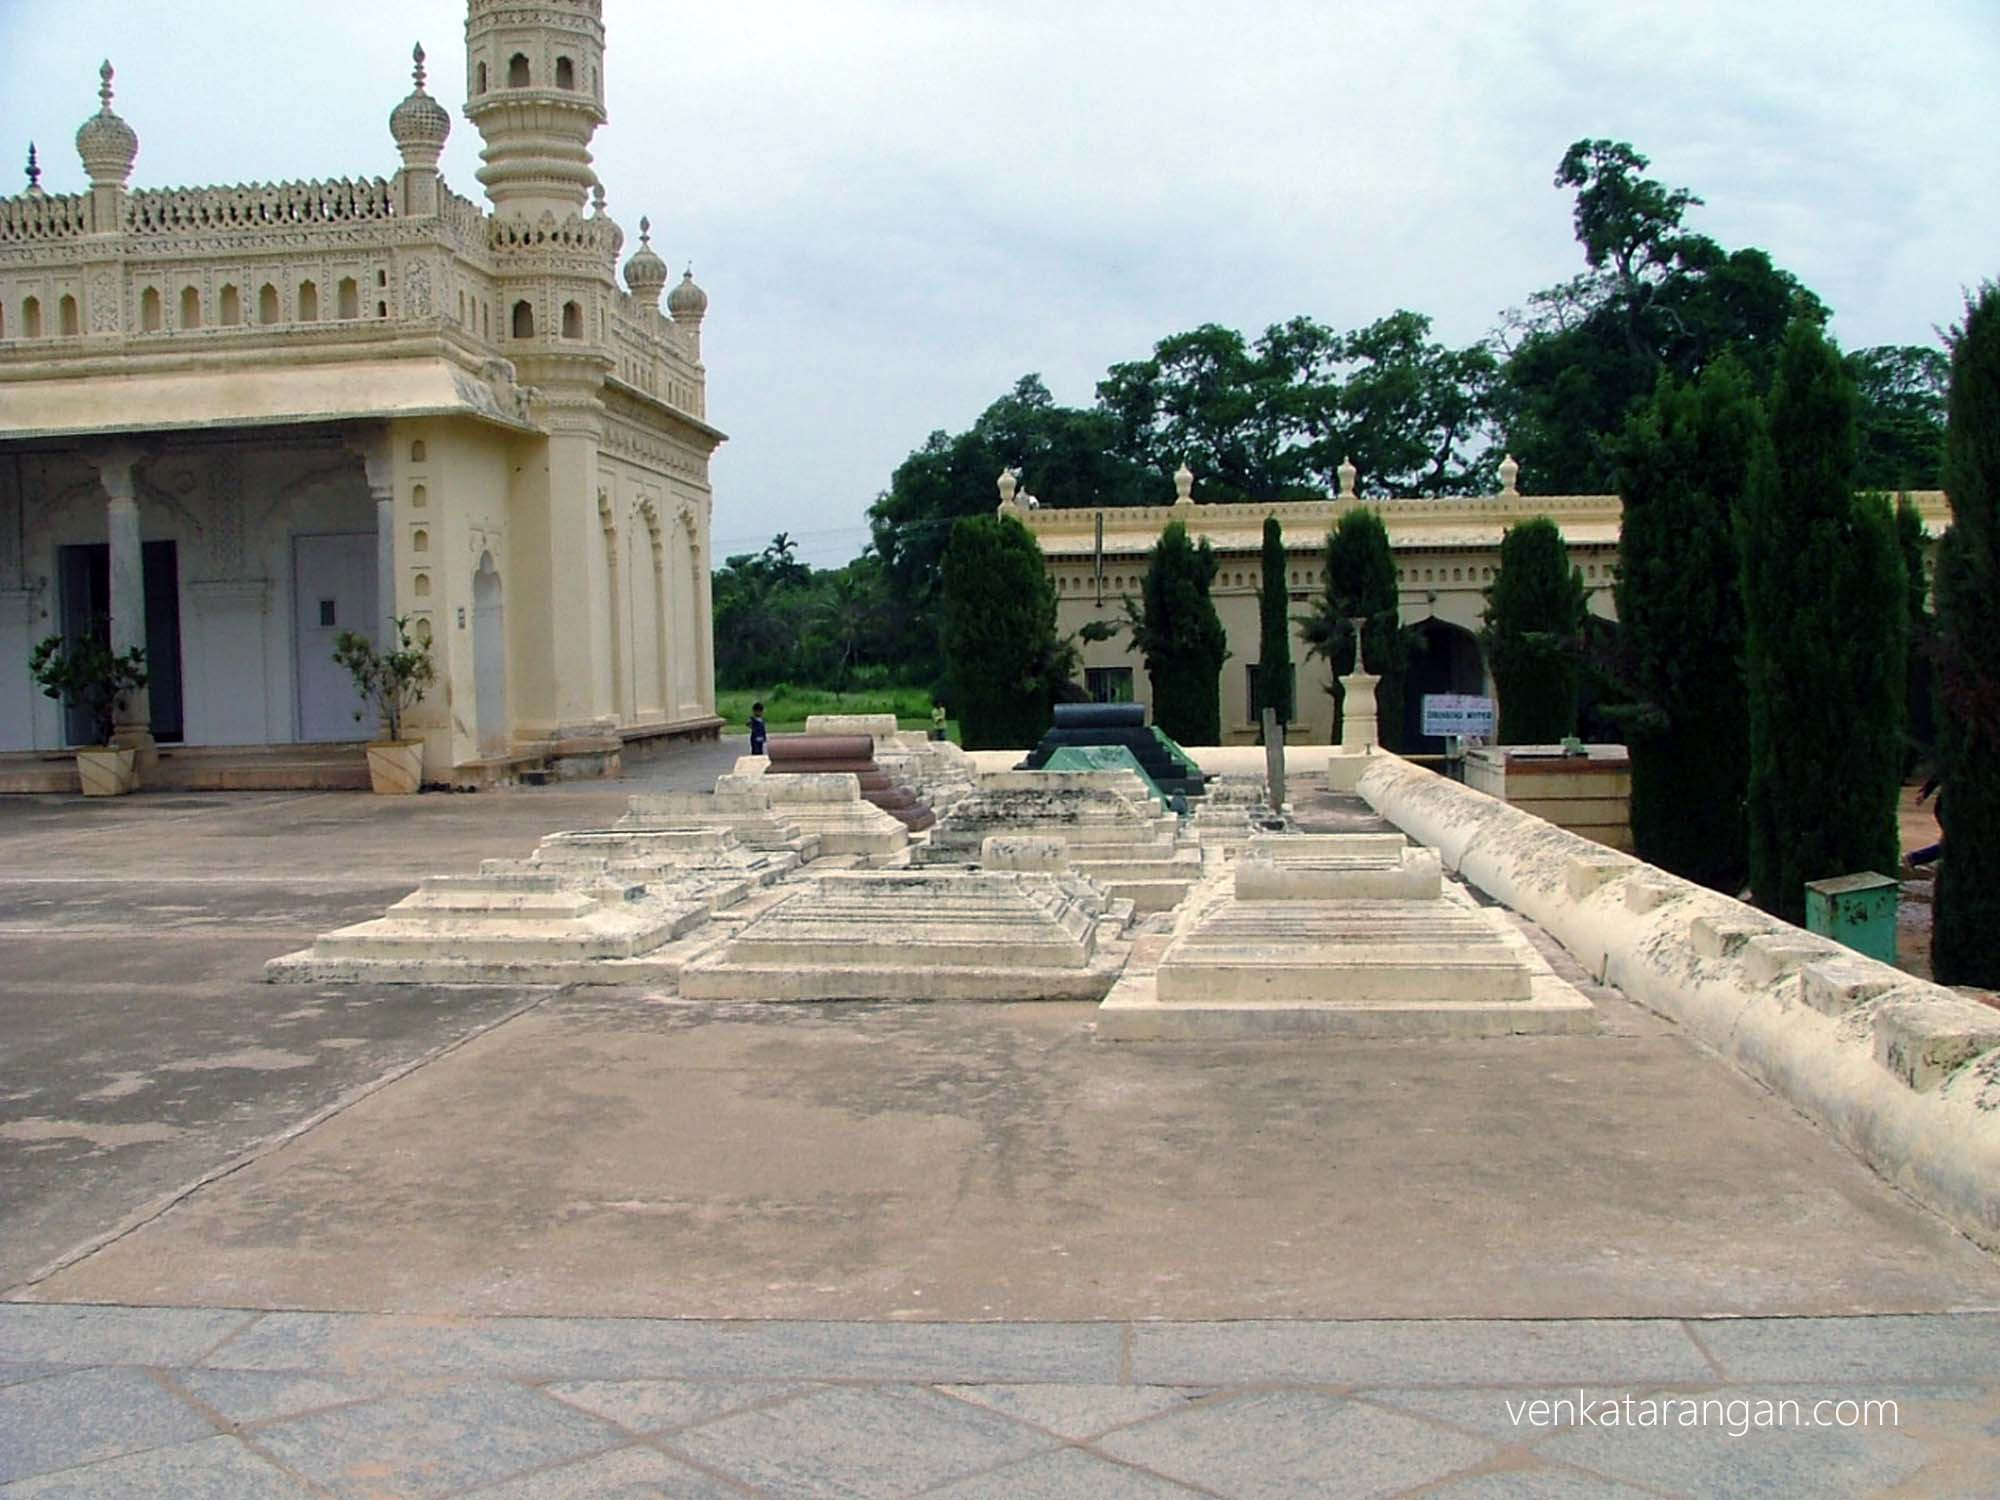 Gumbaz, Srirangapatna holding the graves of Tippu Sultan, his father Hyder Ali and his mother Fakr-Un-Nisa